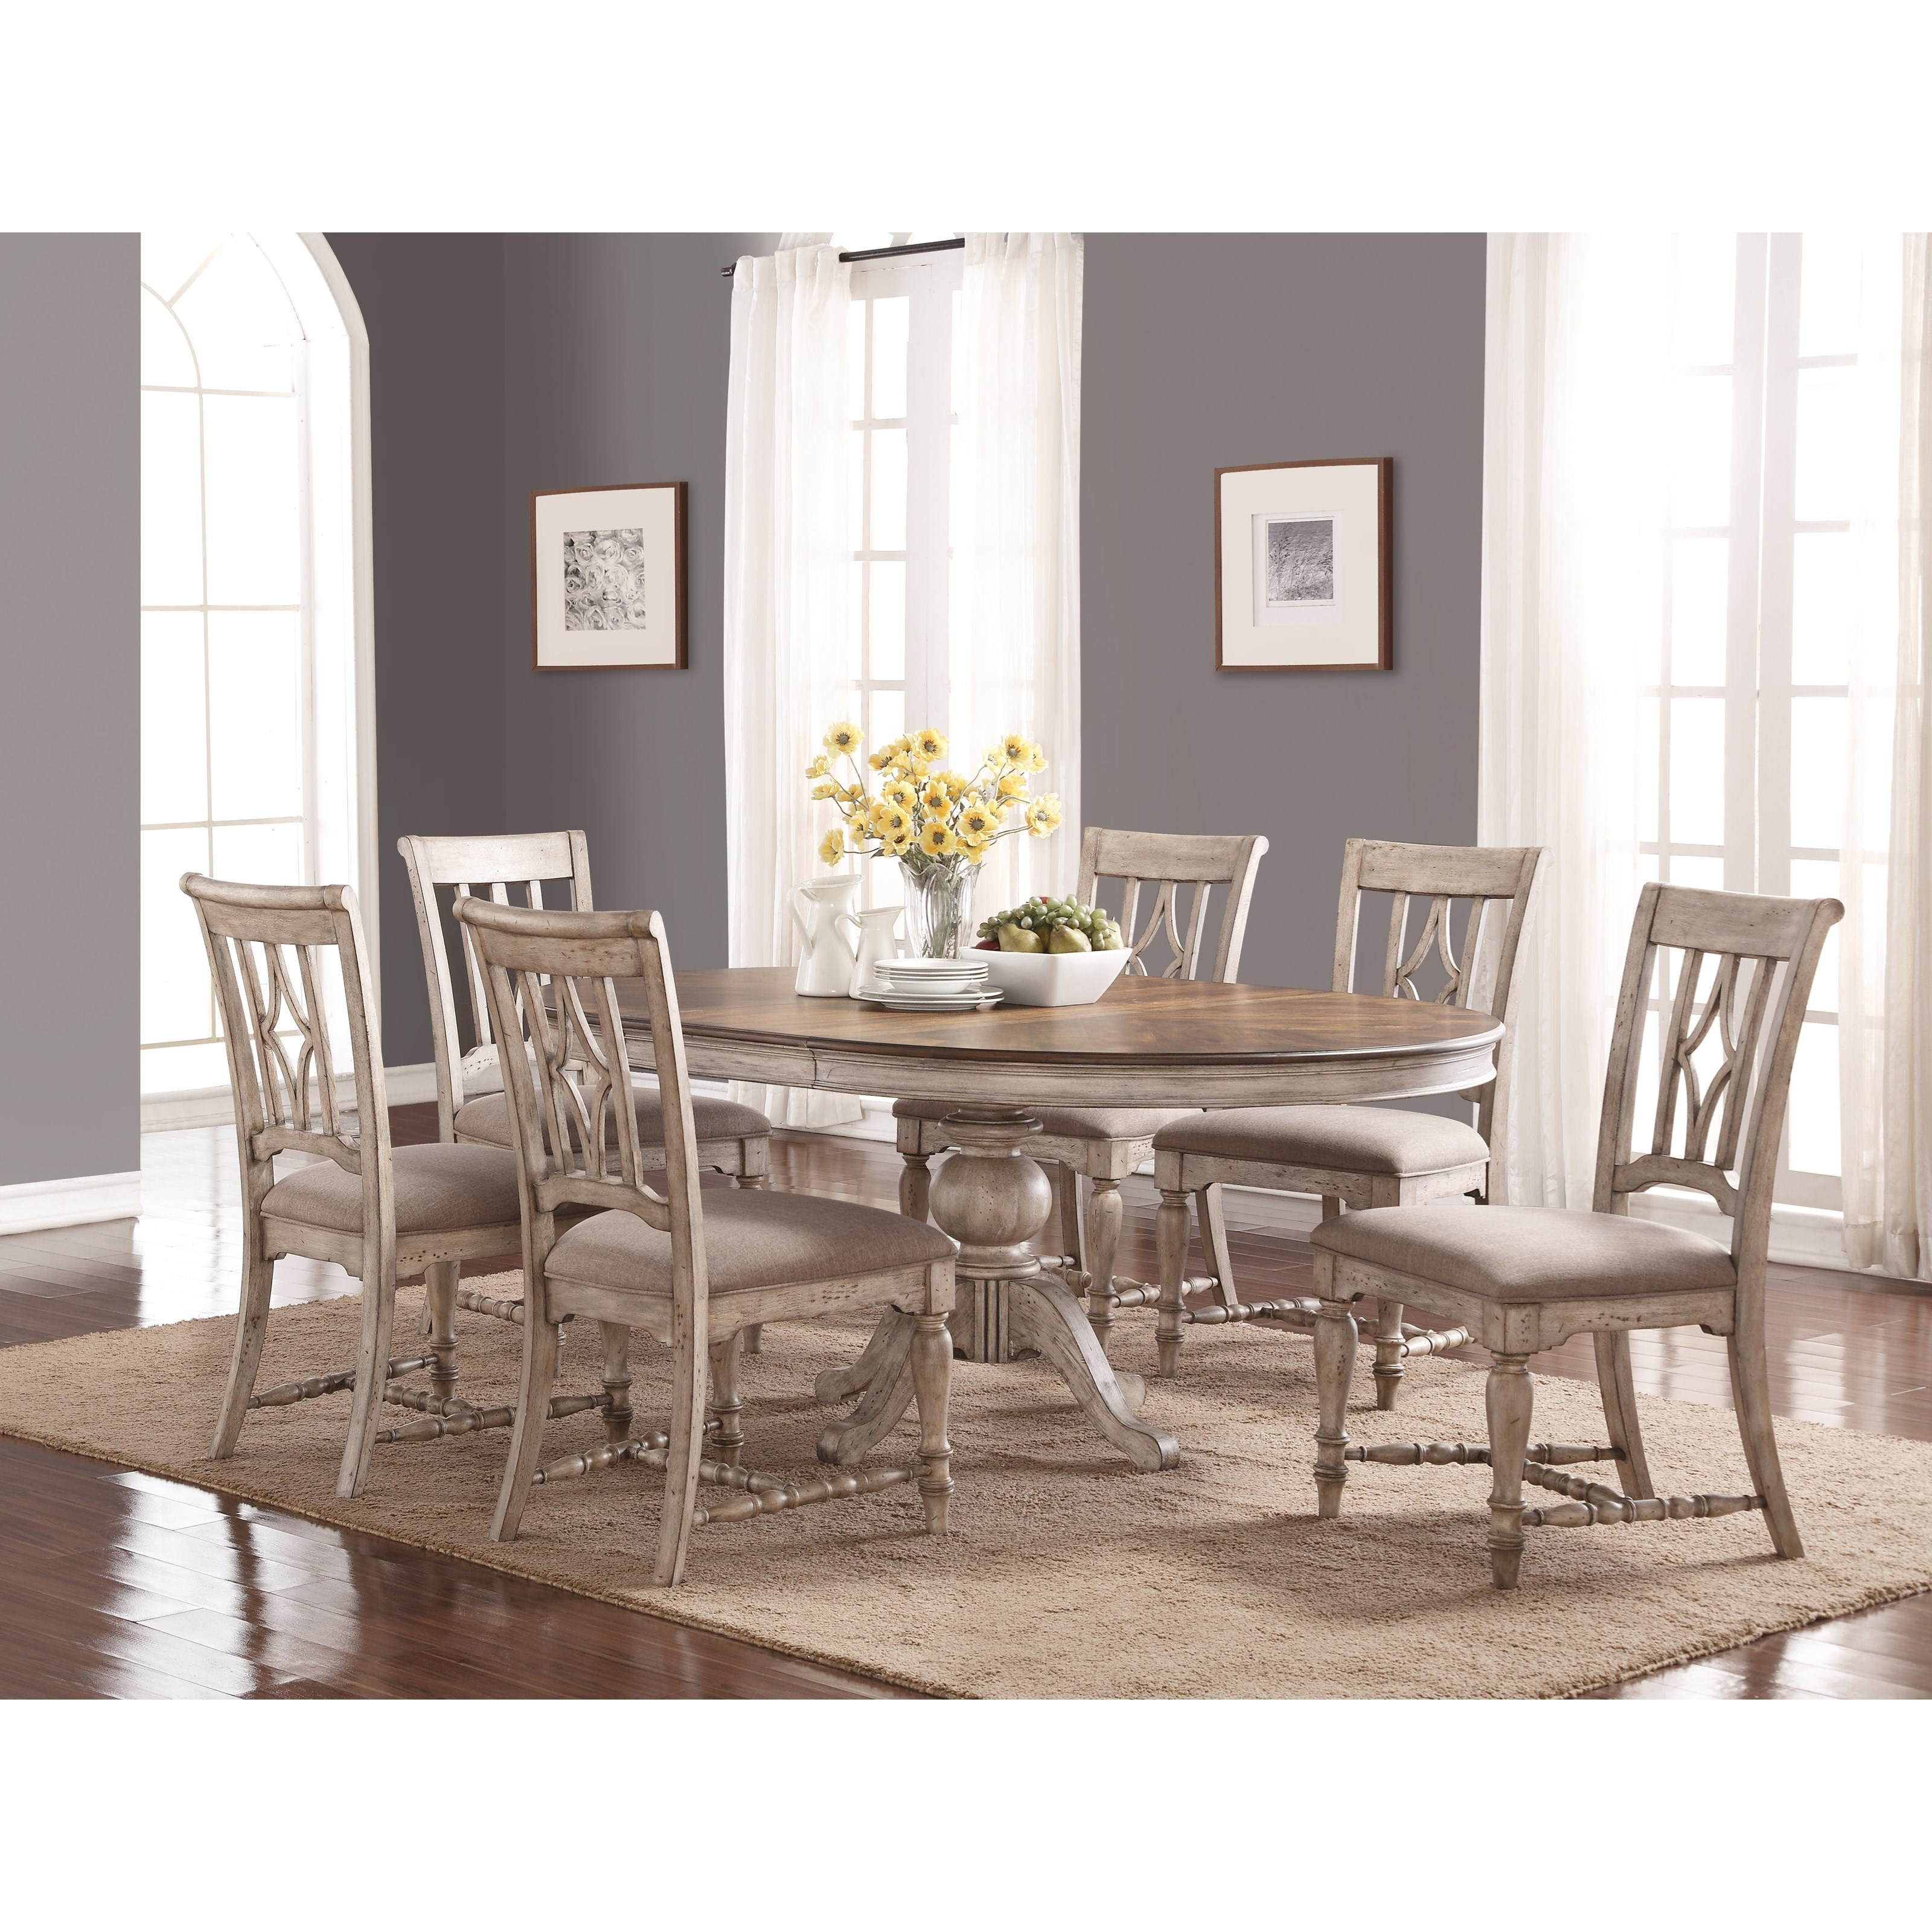 Plymouth Table and Chair Set by Flexsteel Wynwood Collection at Steger's Furniture